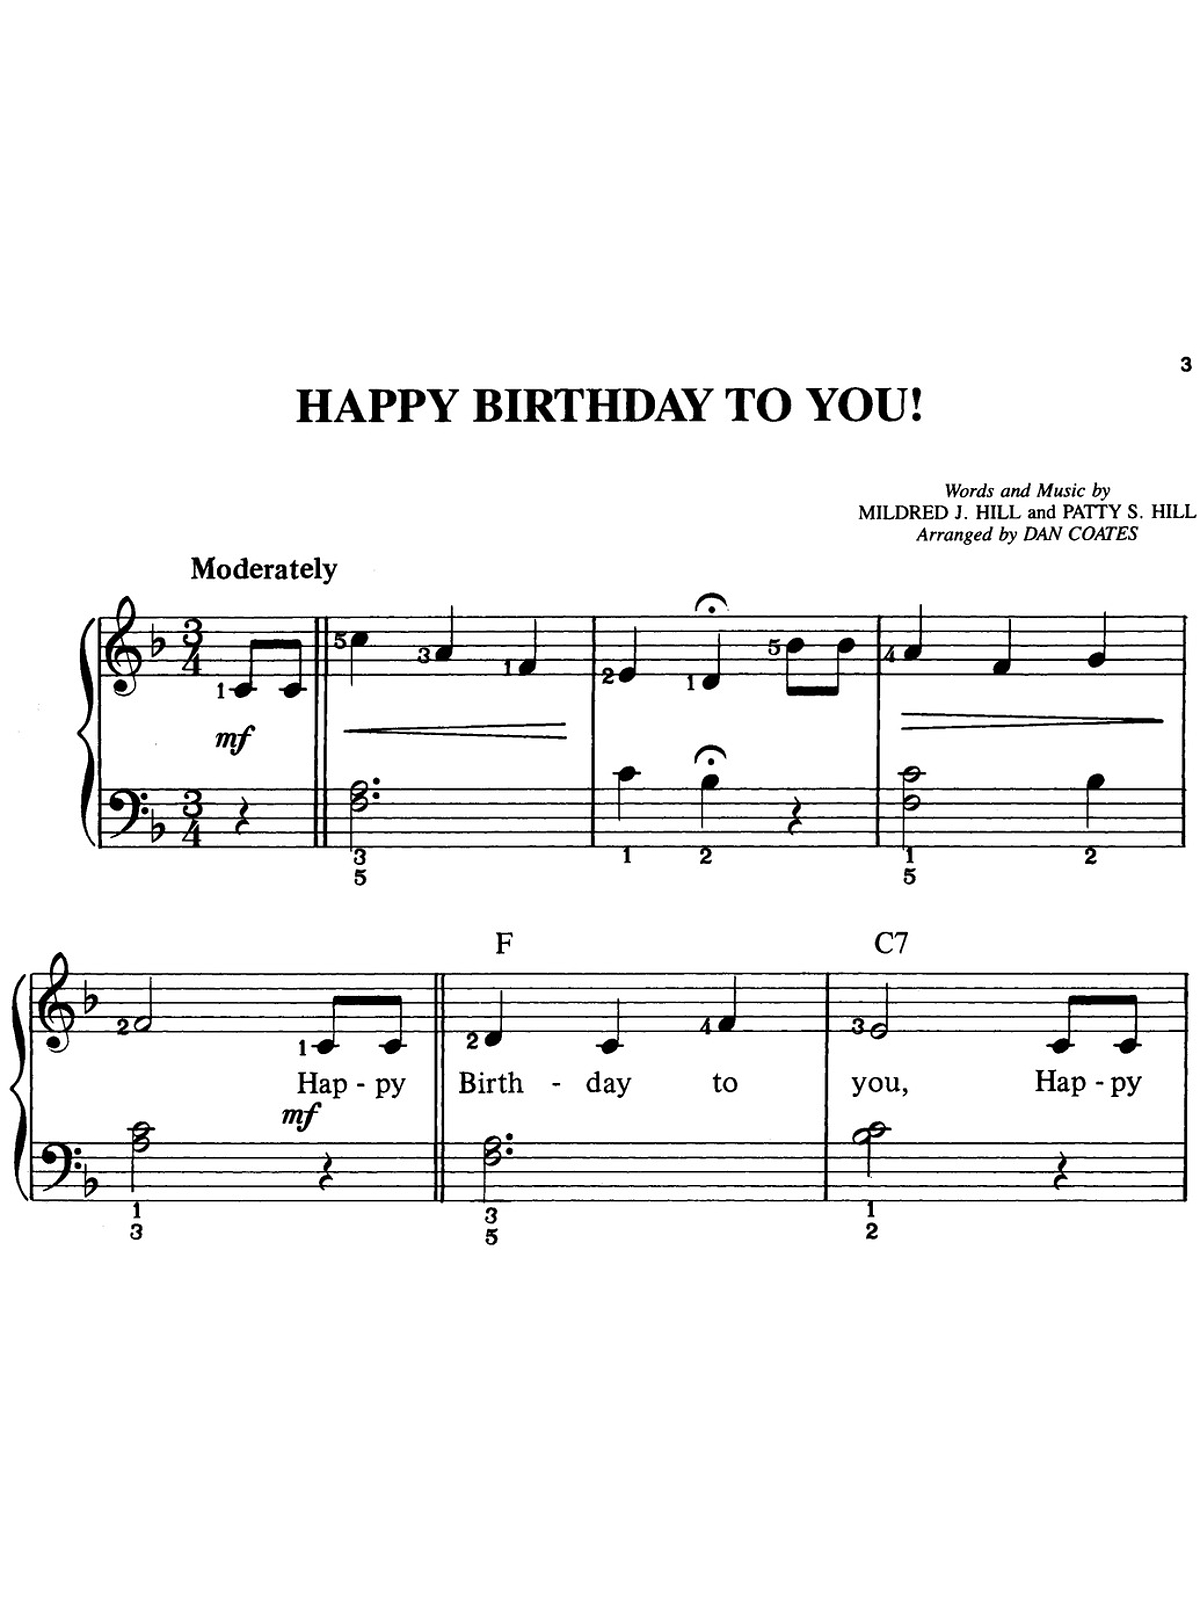 Happy Birthday Sheet Music Pictures to pin on Pinterest